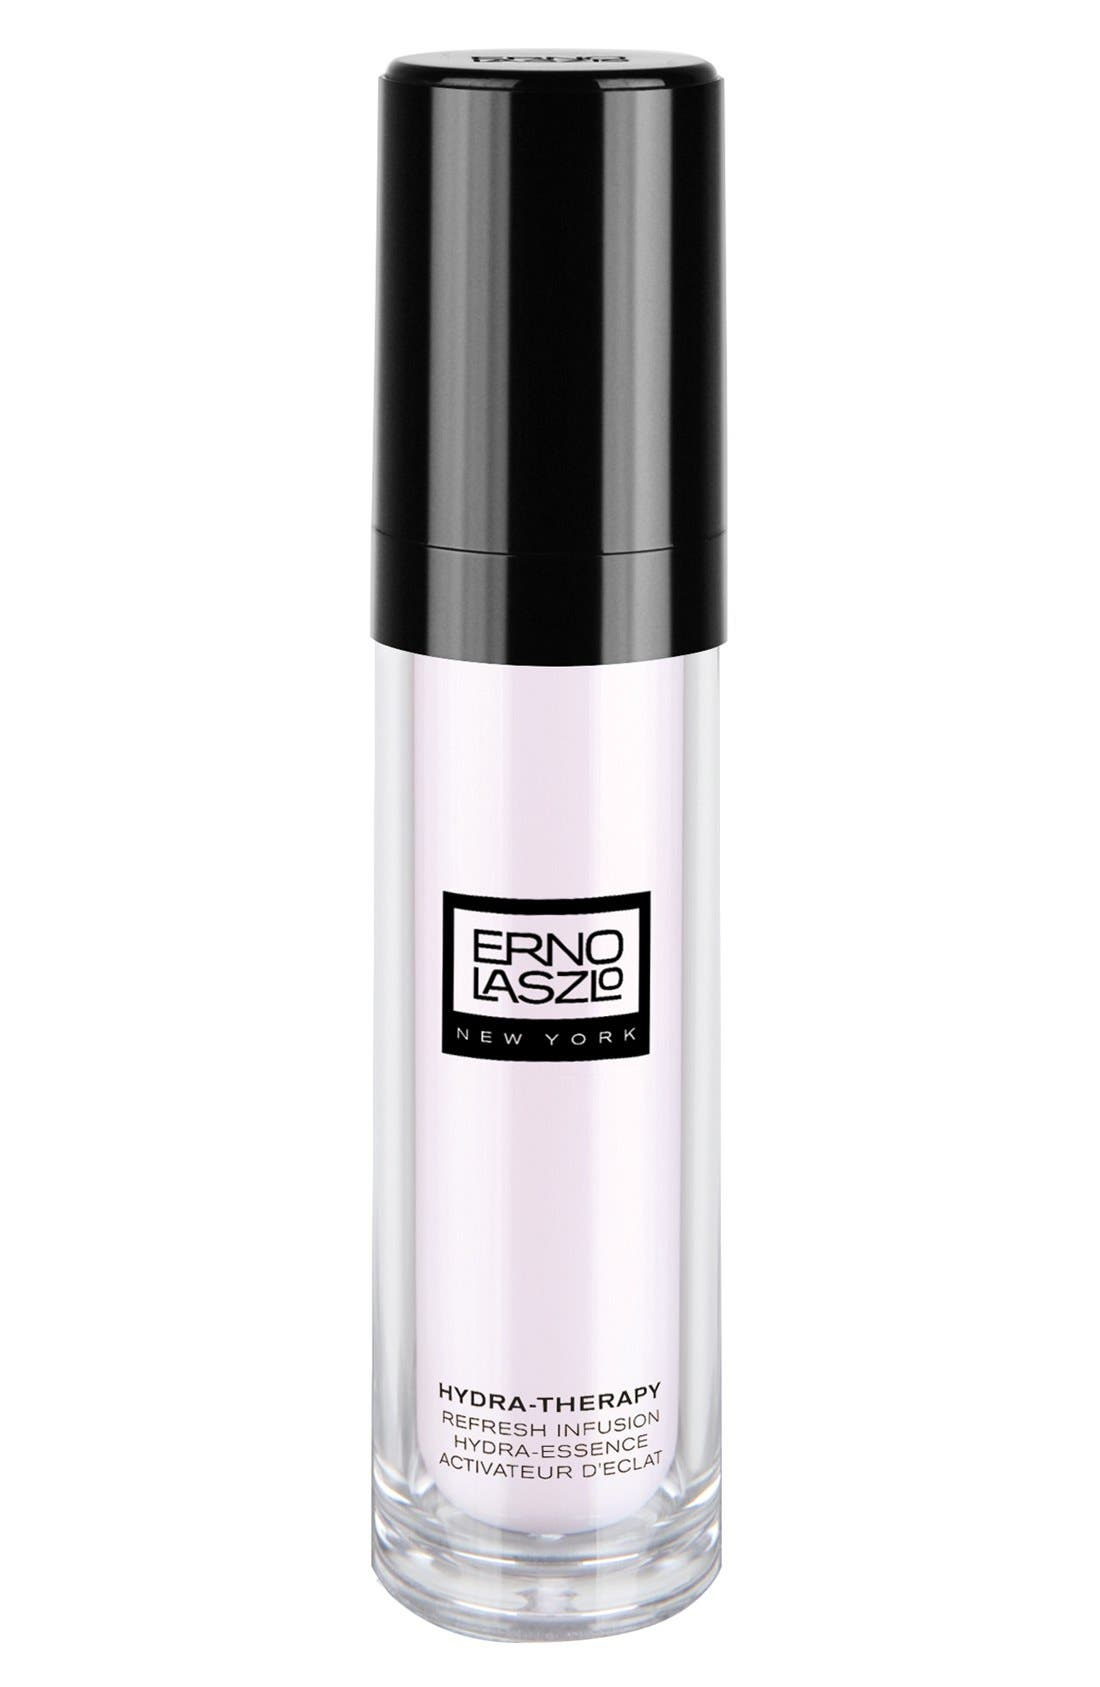 Hydra-Therapy Refresh Infusion Hydrating Serum